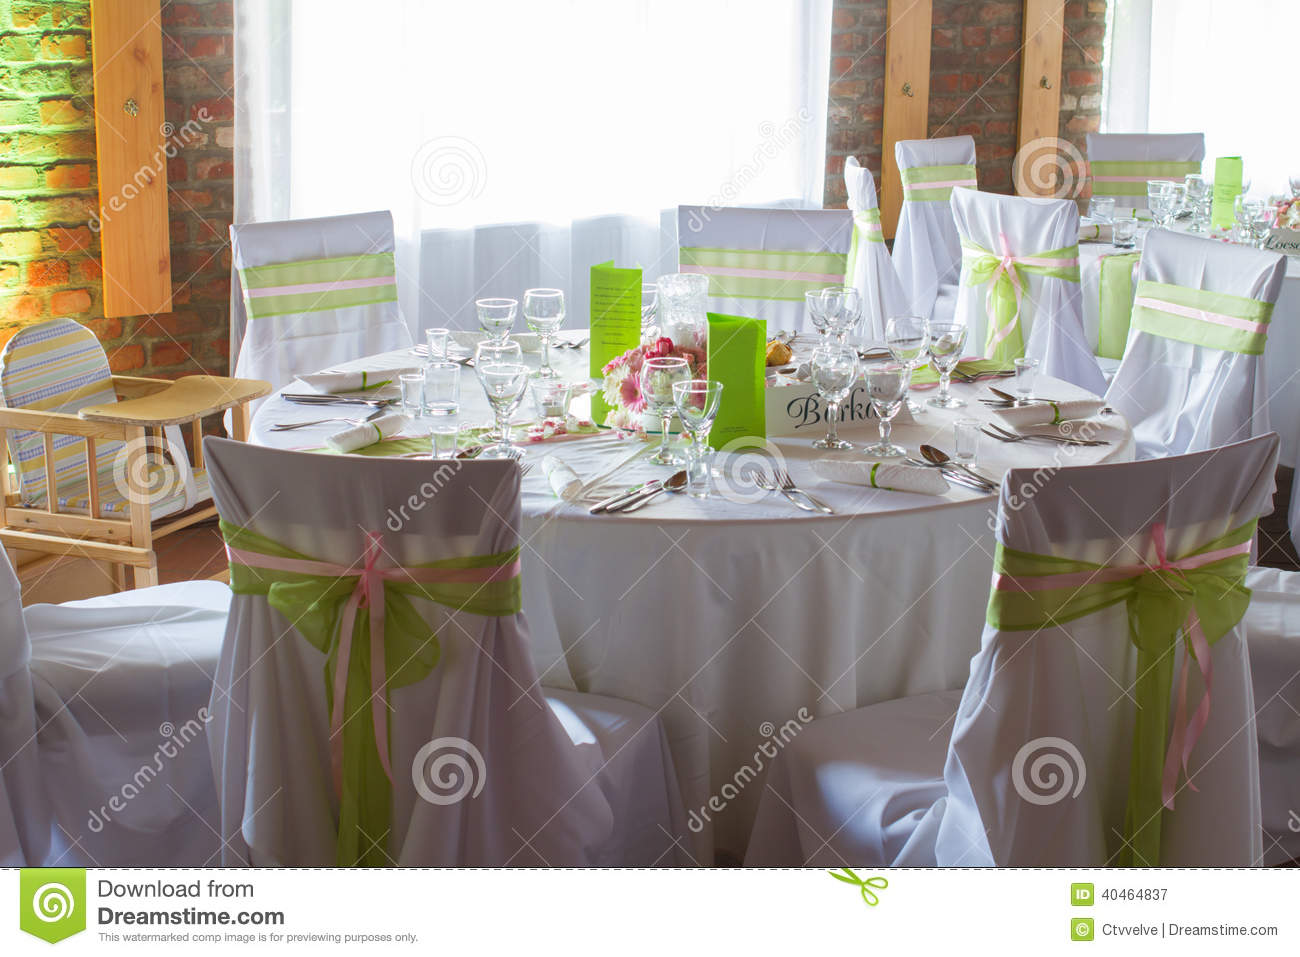 luxury-wedding-lunch-table-setting-gorgeous-tables-fine-dining ...